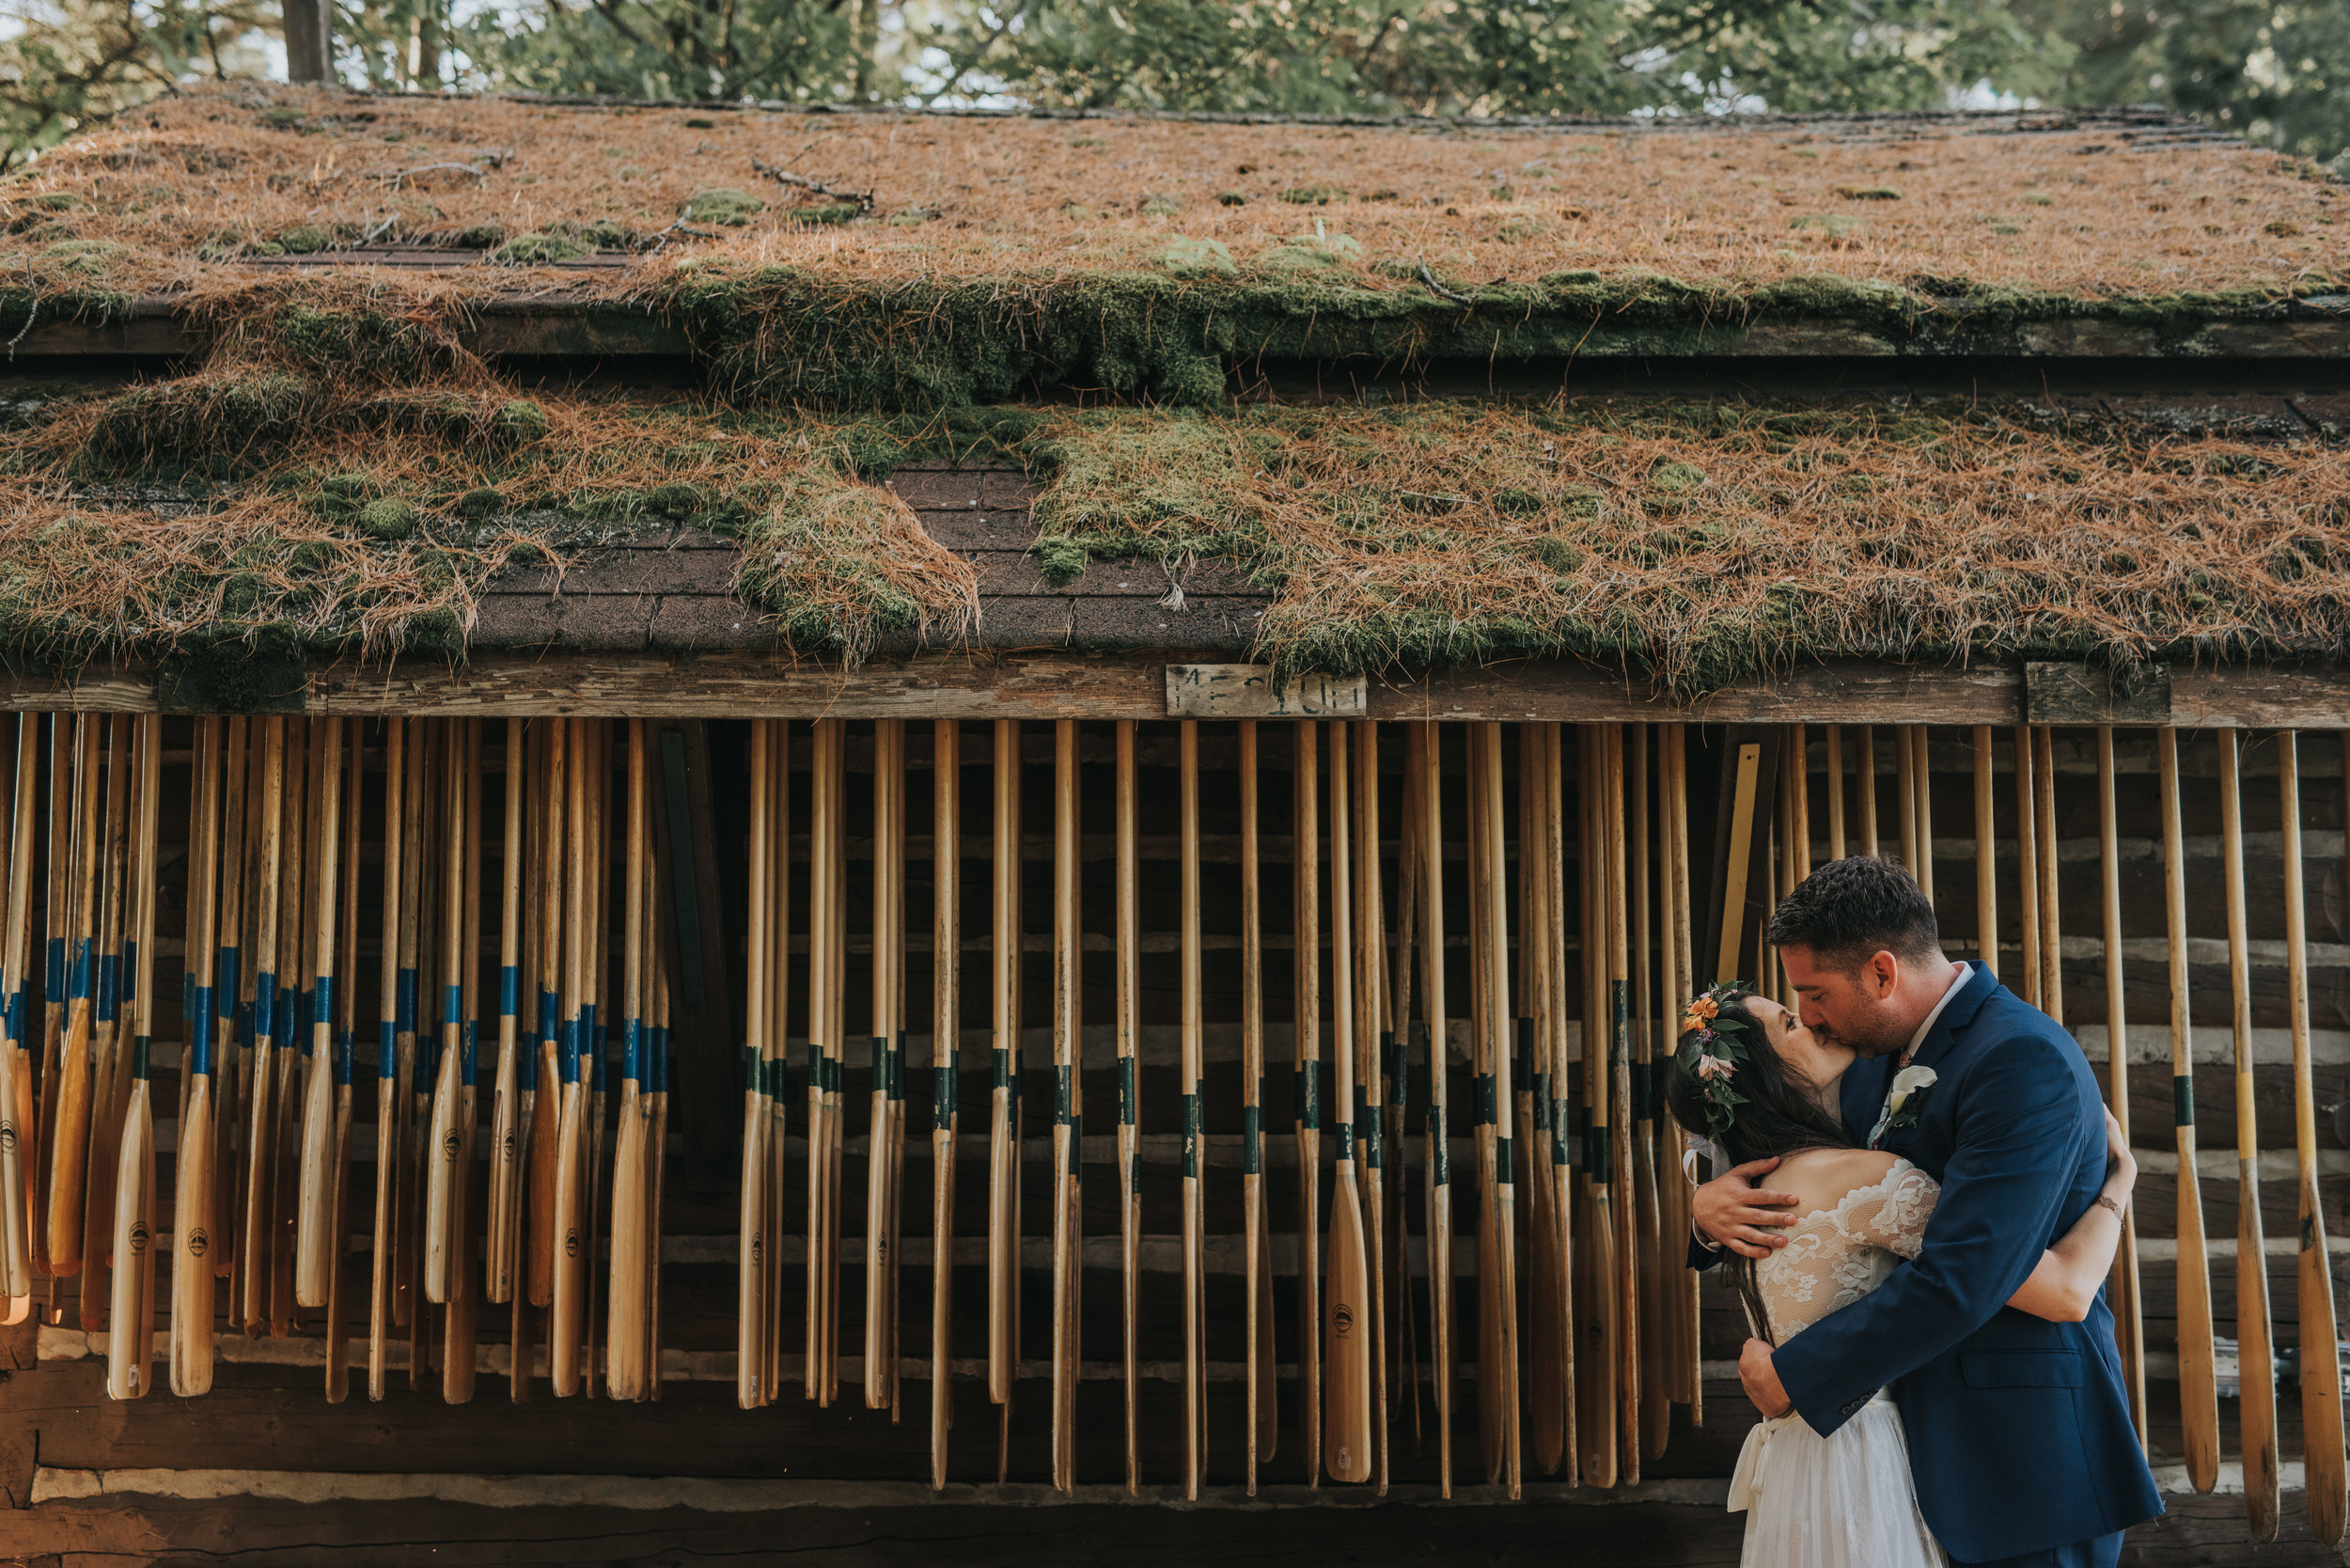 bride-groom-kissing-rustic-cabin-wedding-toronto-bohemian-boho-outdoor-summer-wedding-documentary-wedding-photography-by-willow-birch-photo.jpg